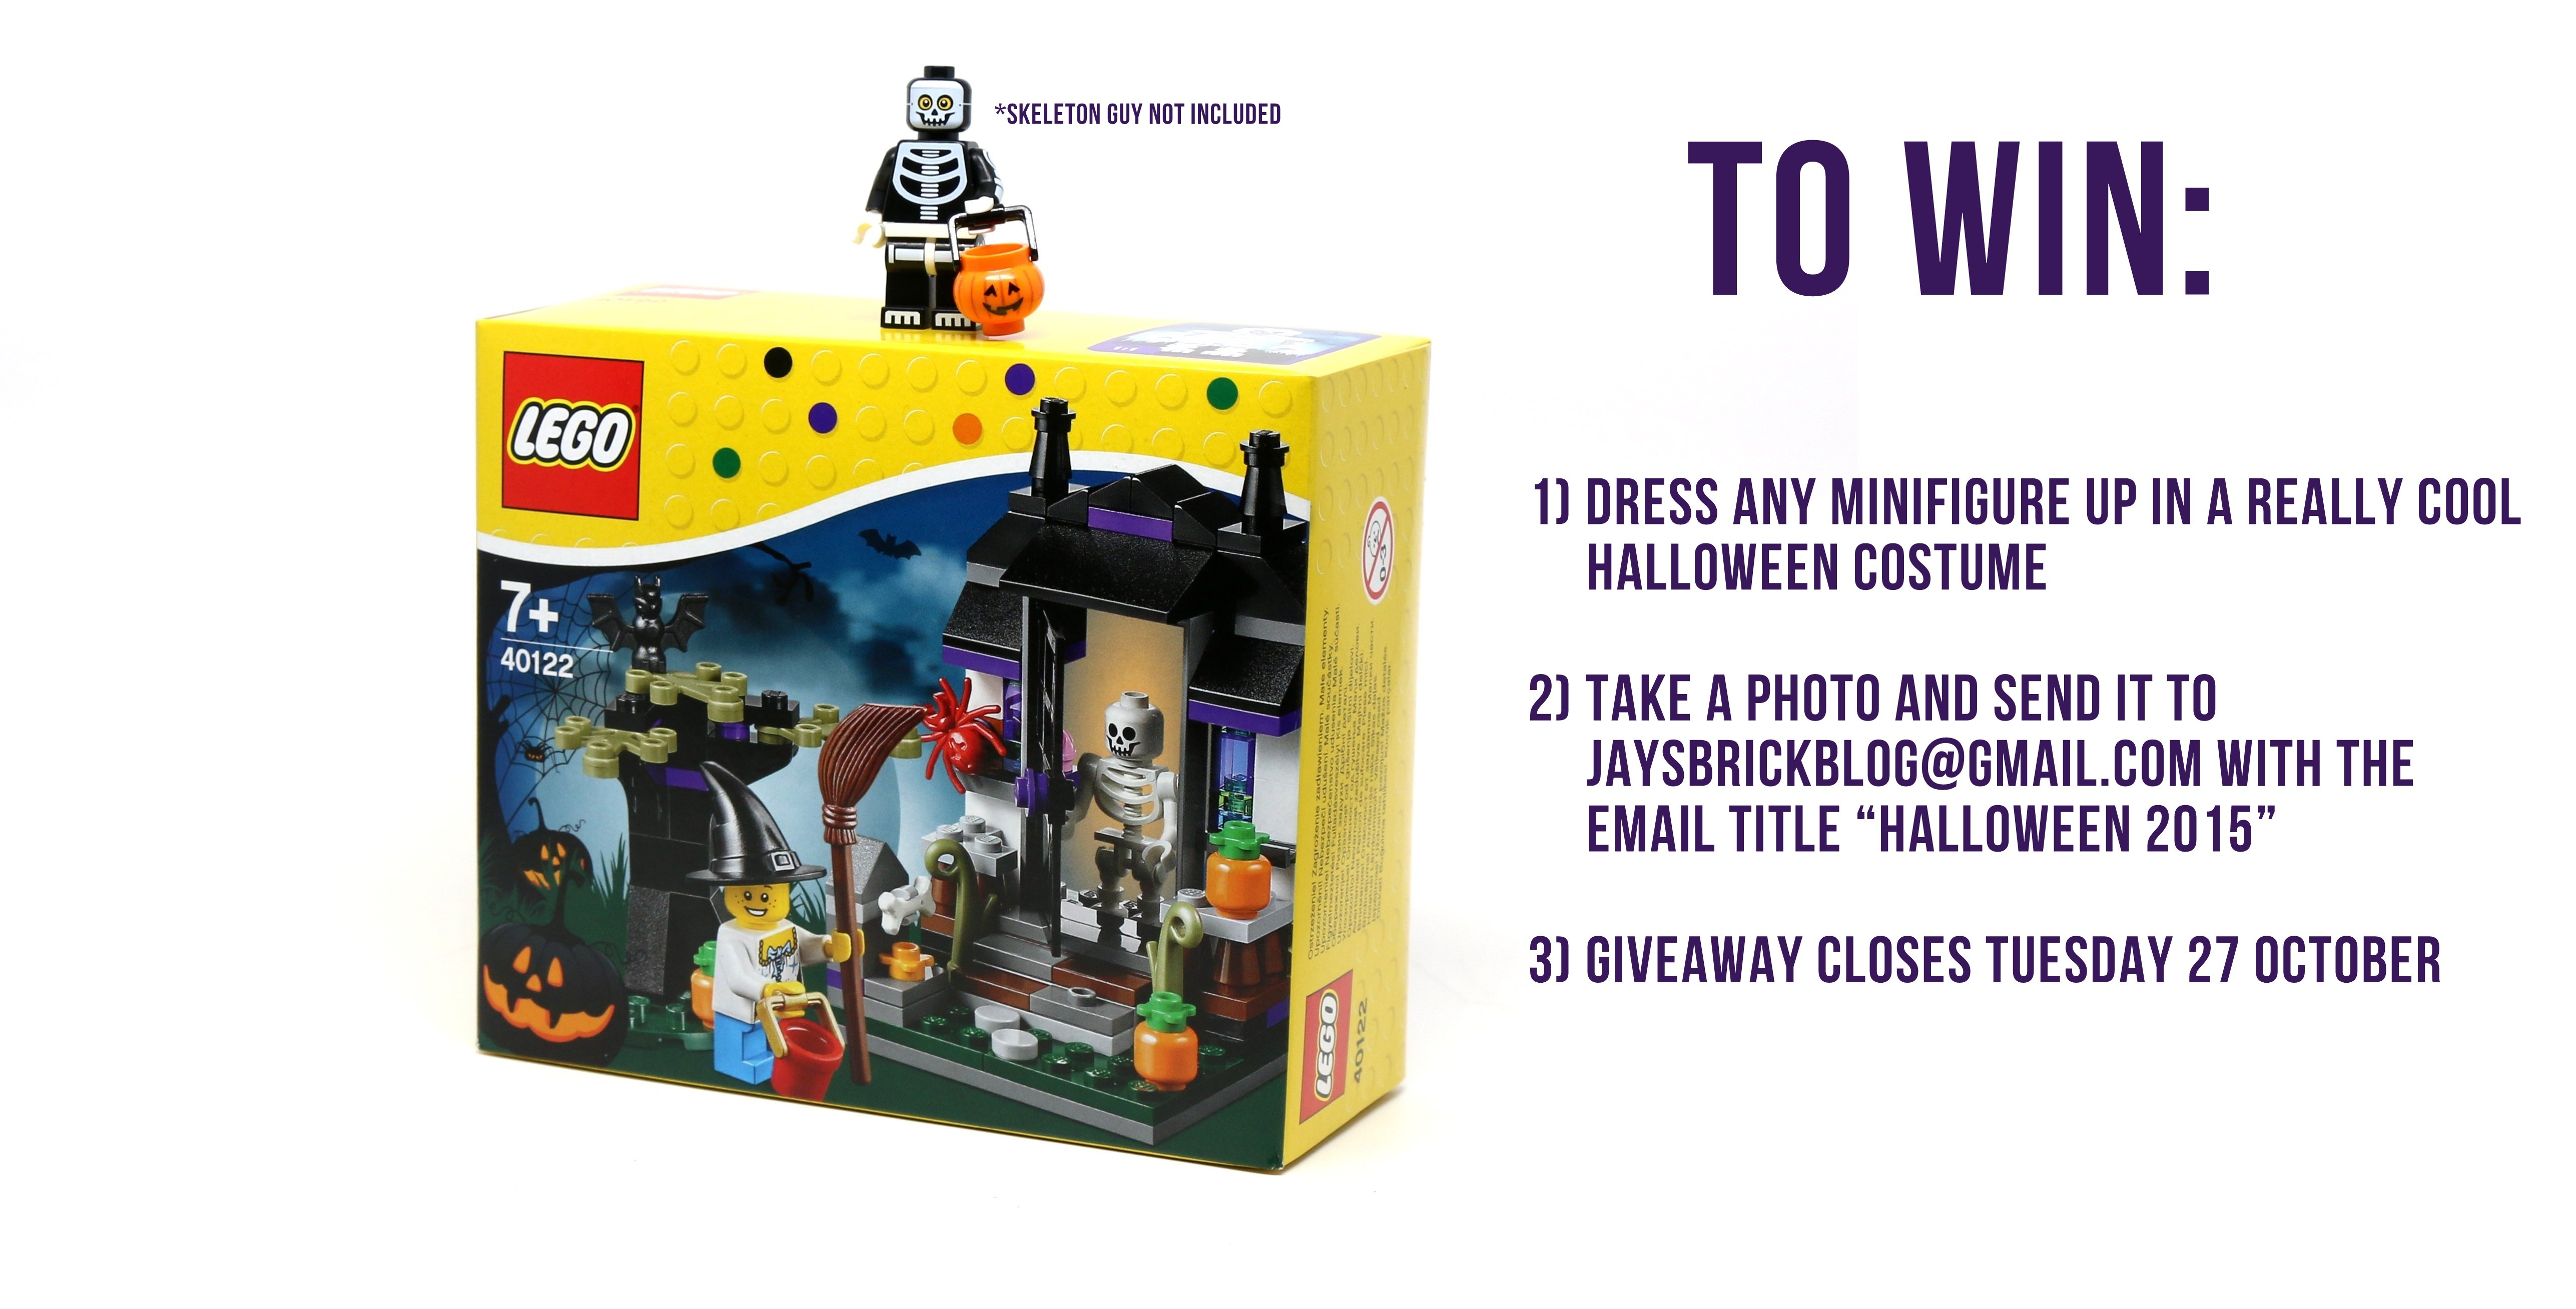 Halloween 2015 Giveaway – Win a LEGO Trick or Treat set!